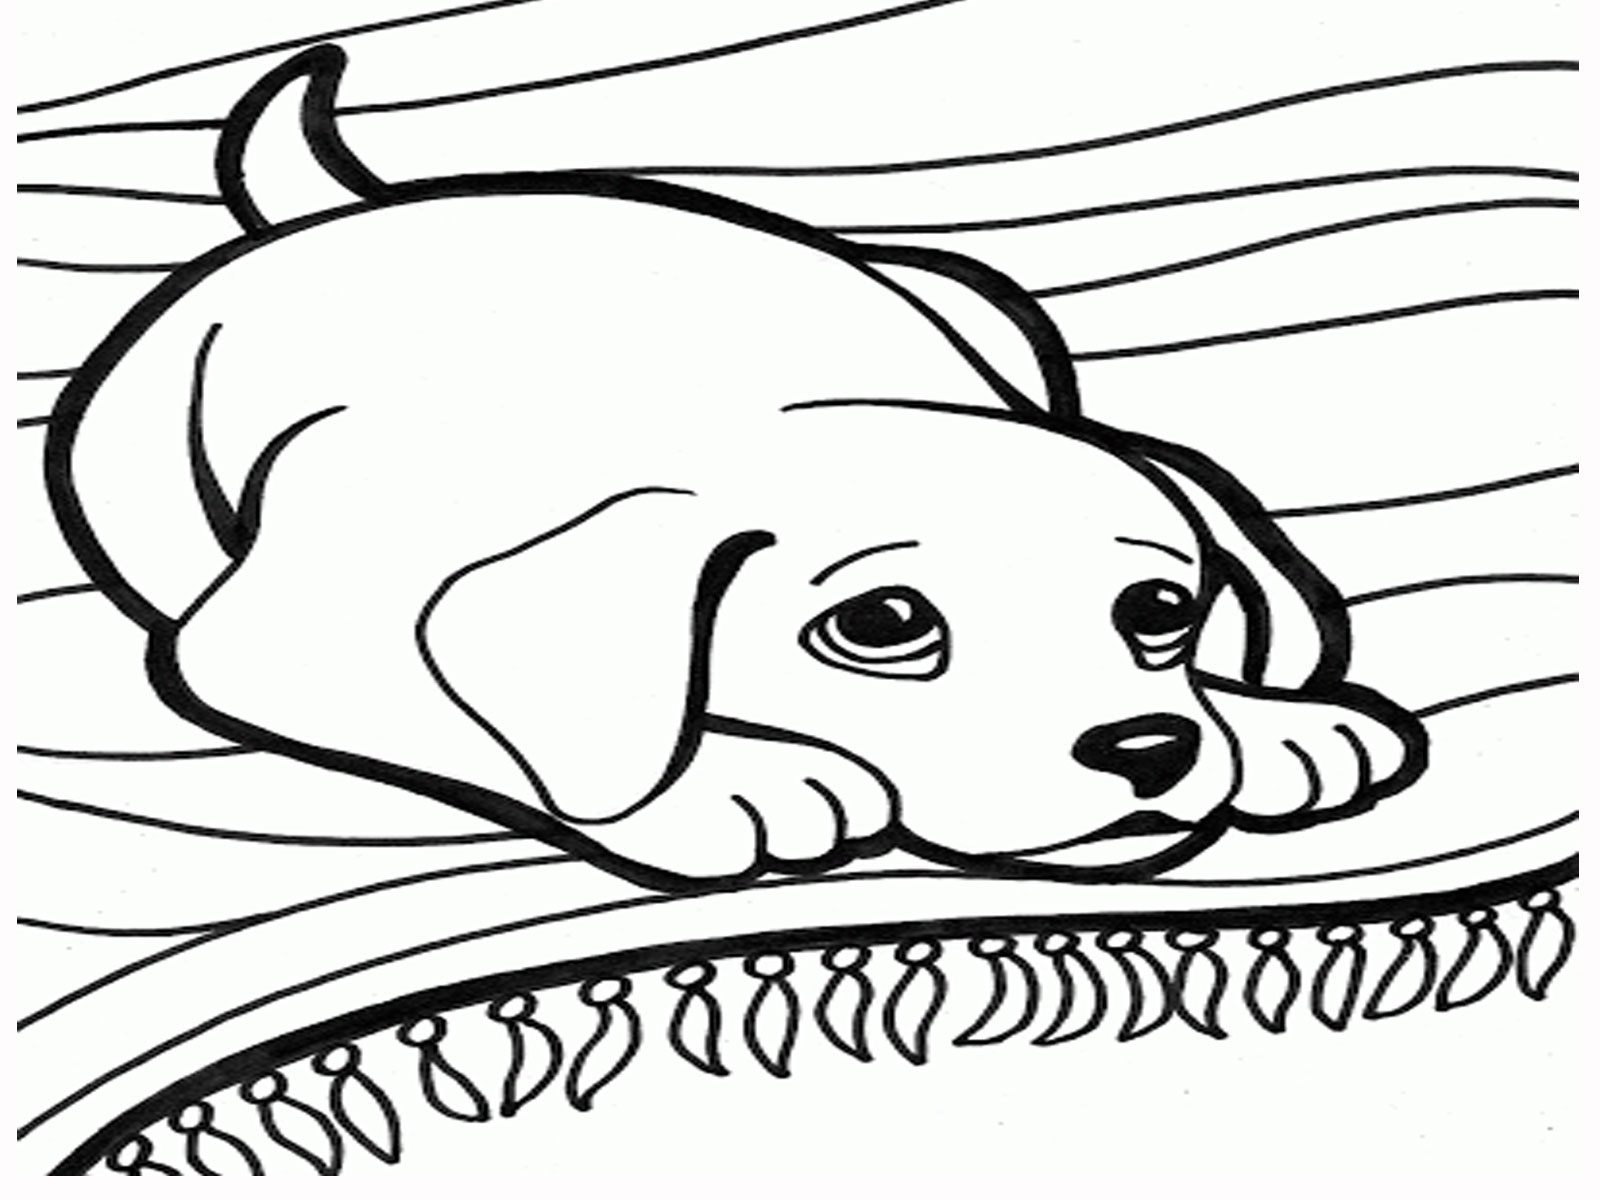 Dog Head Coloring Pages At Getdrawings